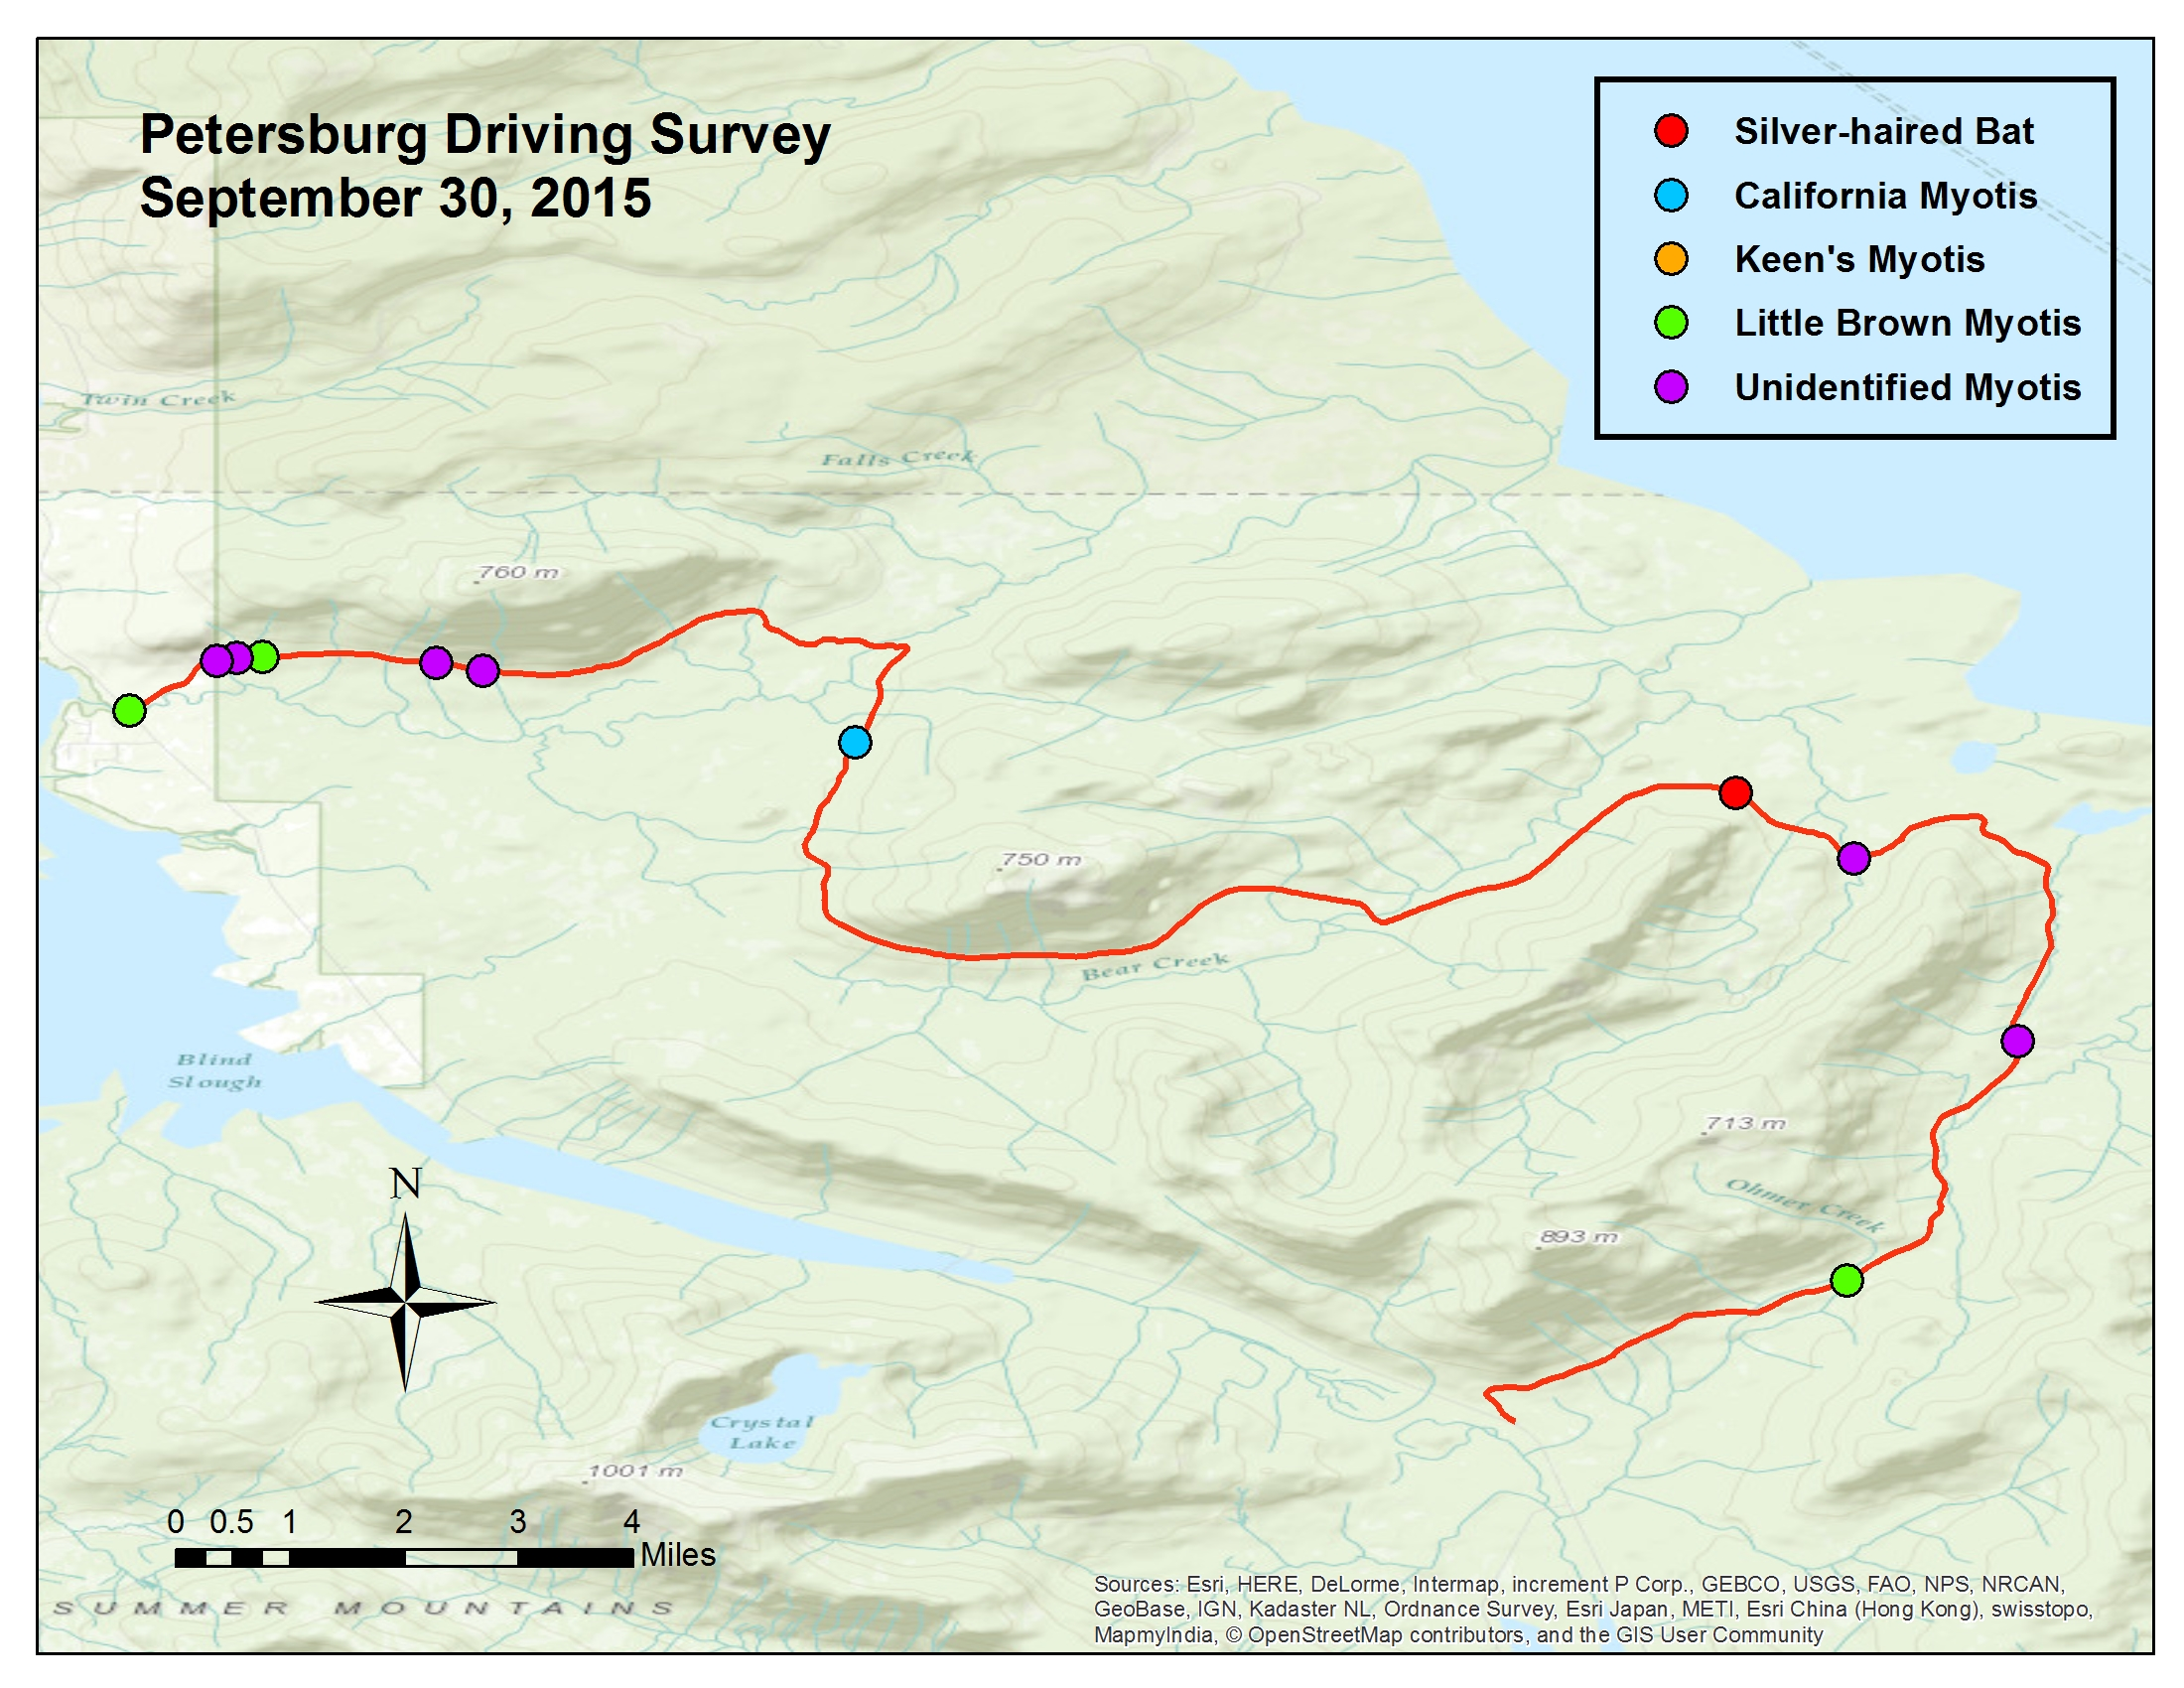 This graph shows the bat species detected near Petersburg in a survey done Sept. 30, 2015. (Image courtesy of Steve Lewis)